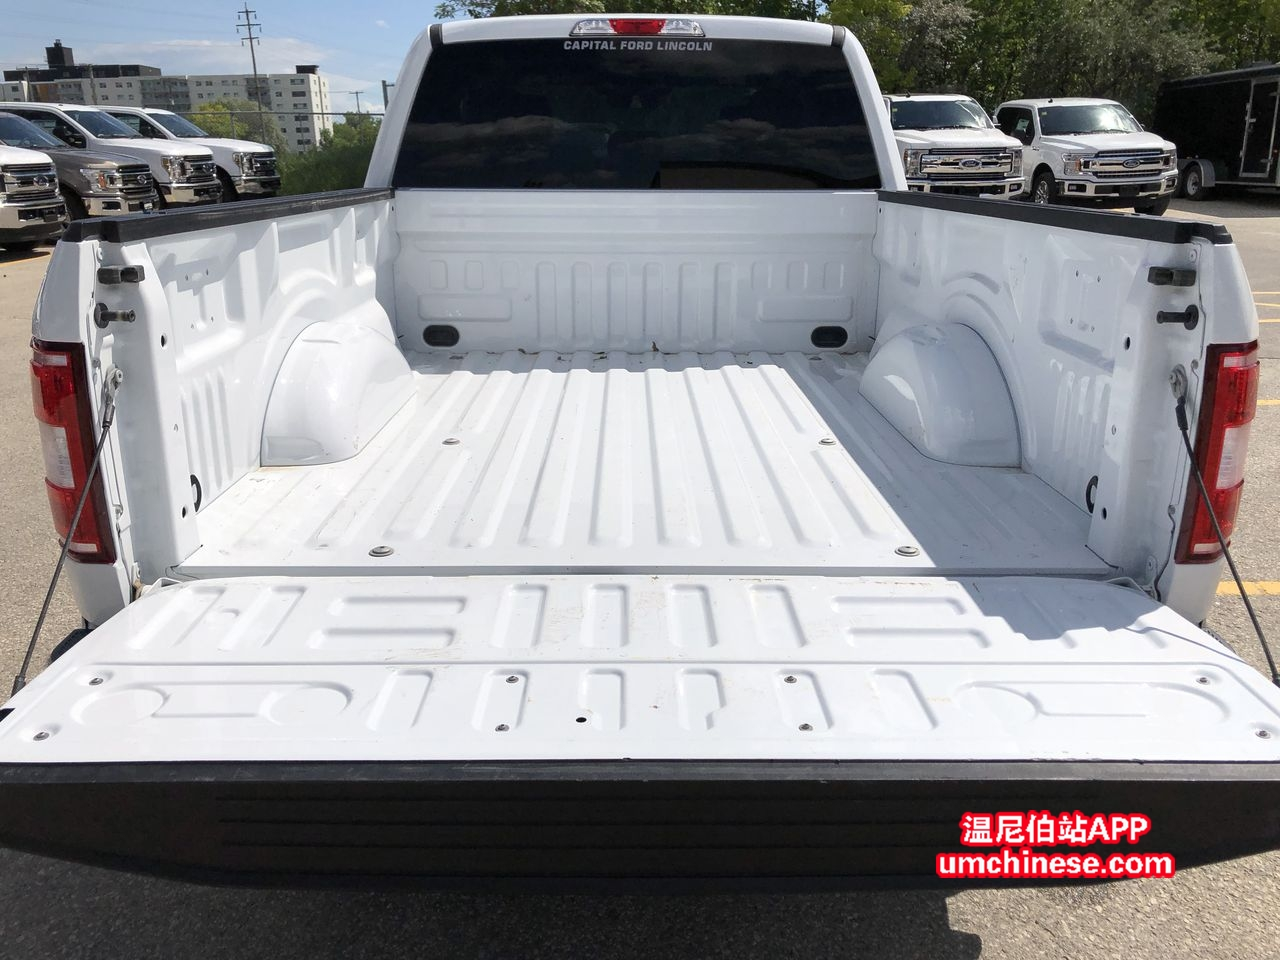 capital ford winnipeg 2018f-150-truck bed.jpg